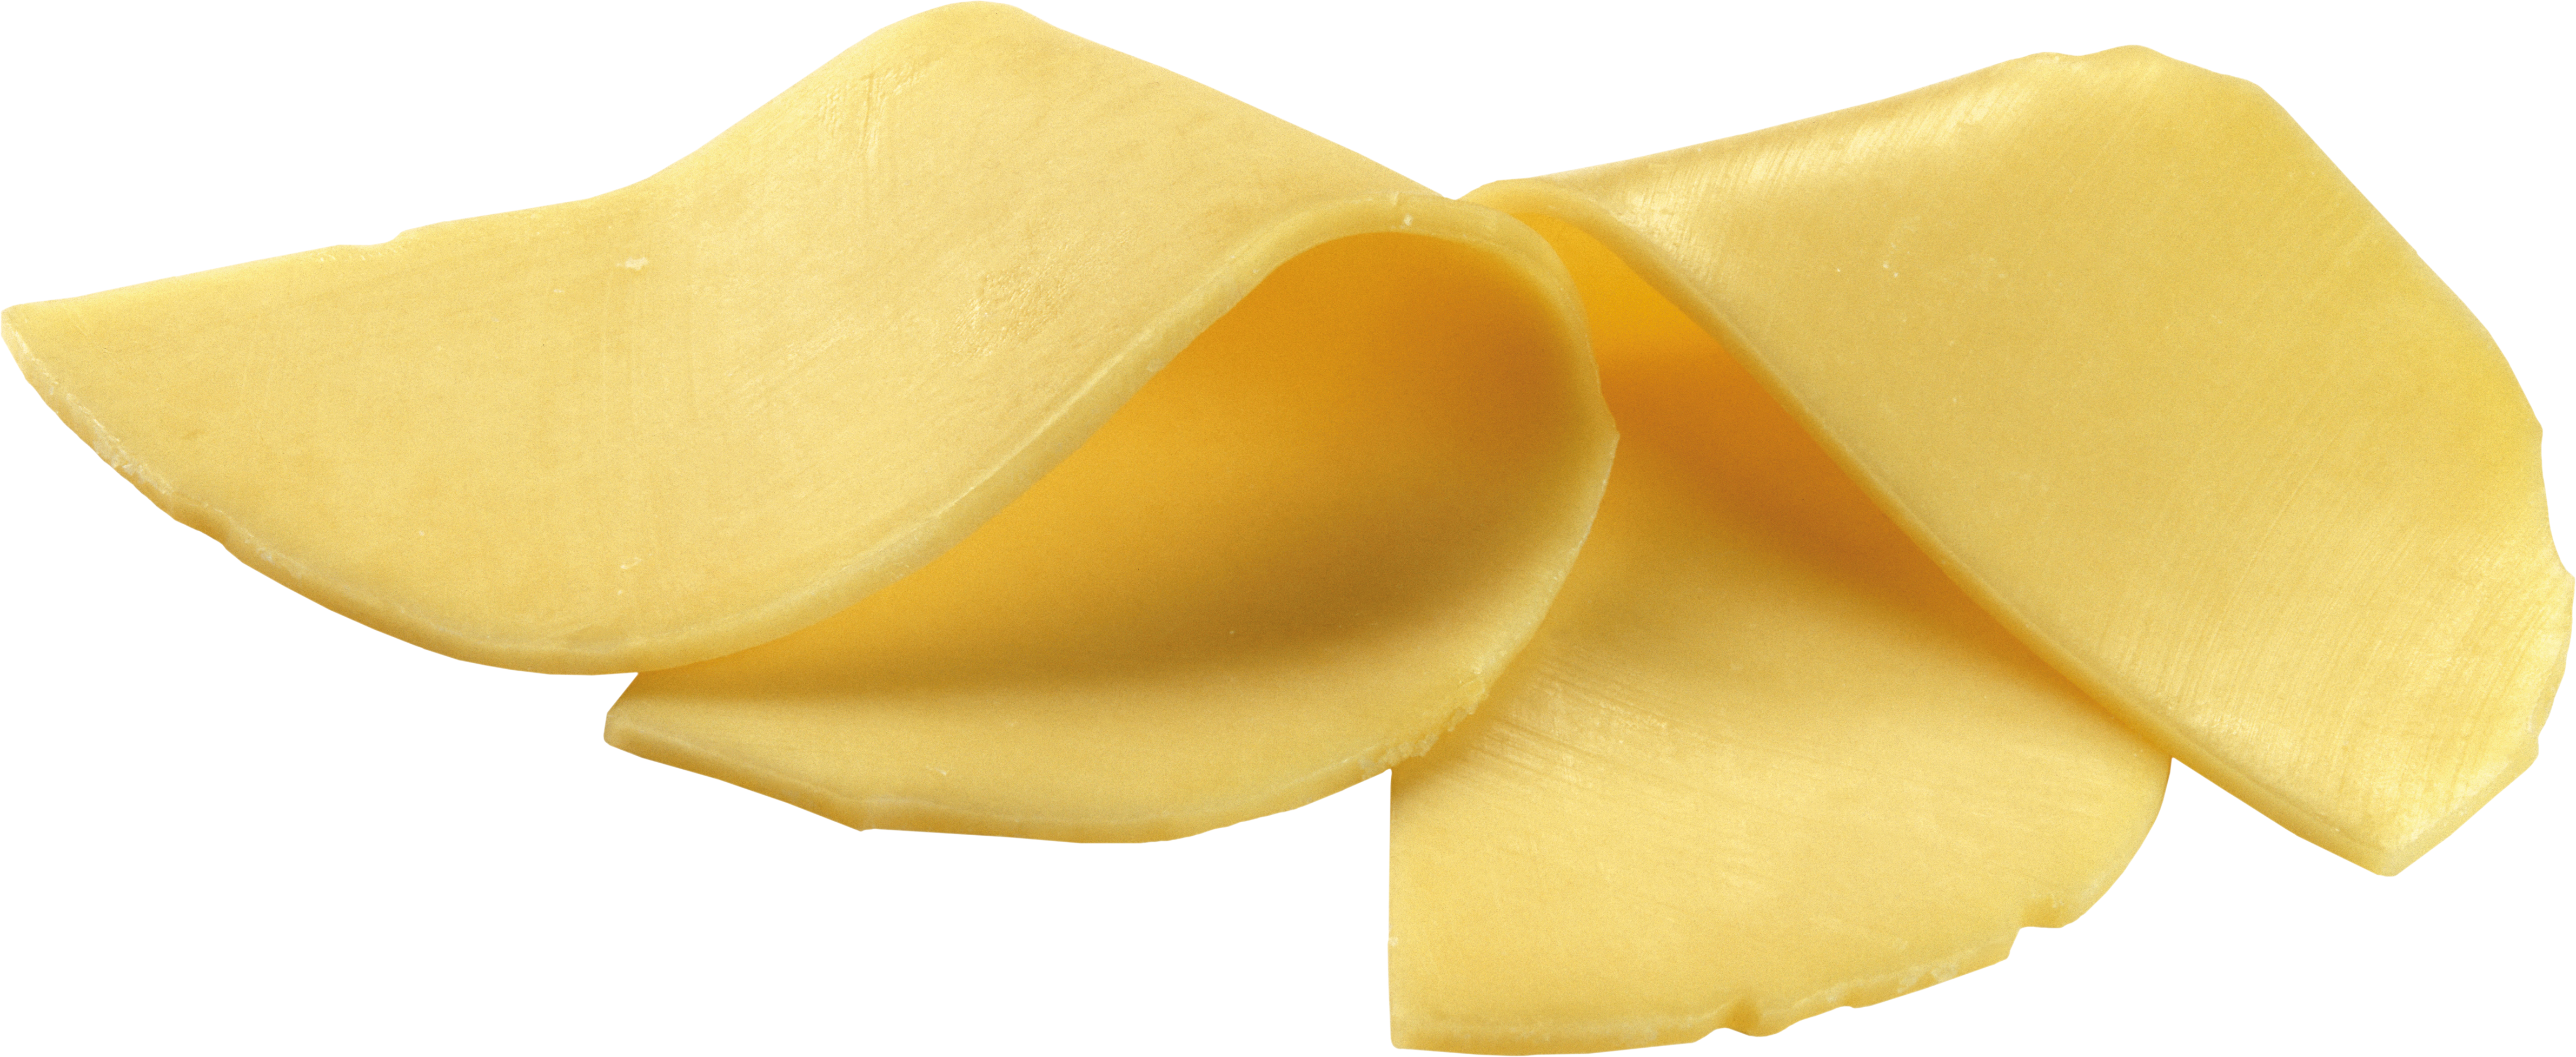 uploads cheese cheese PNG25313 25